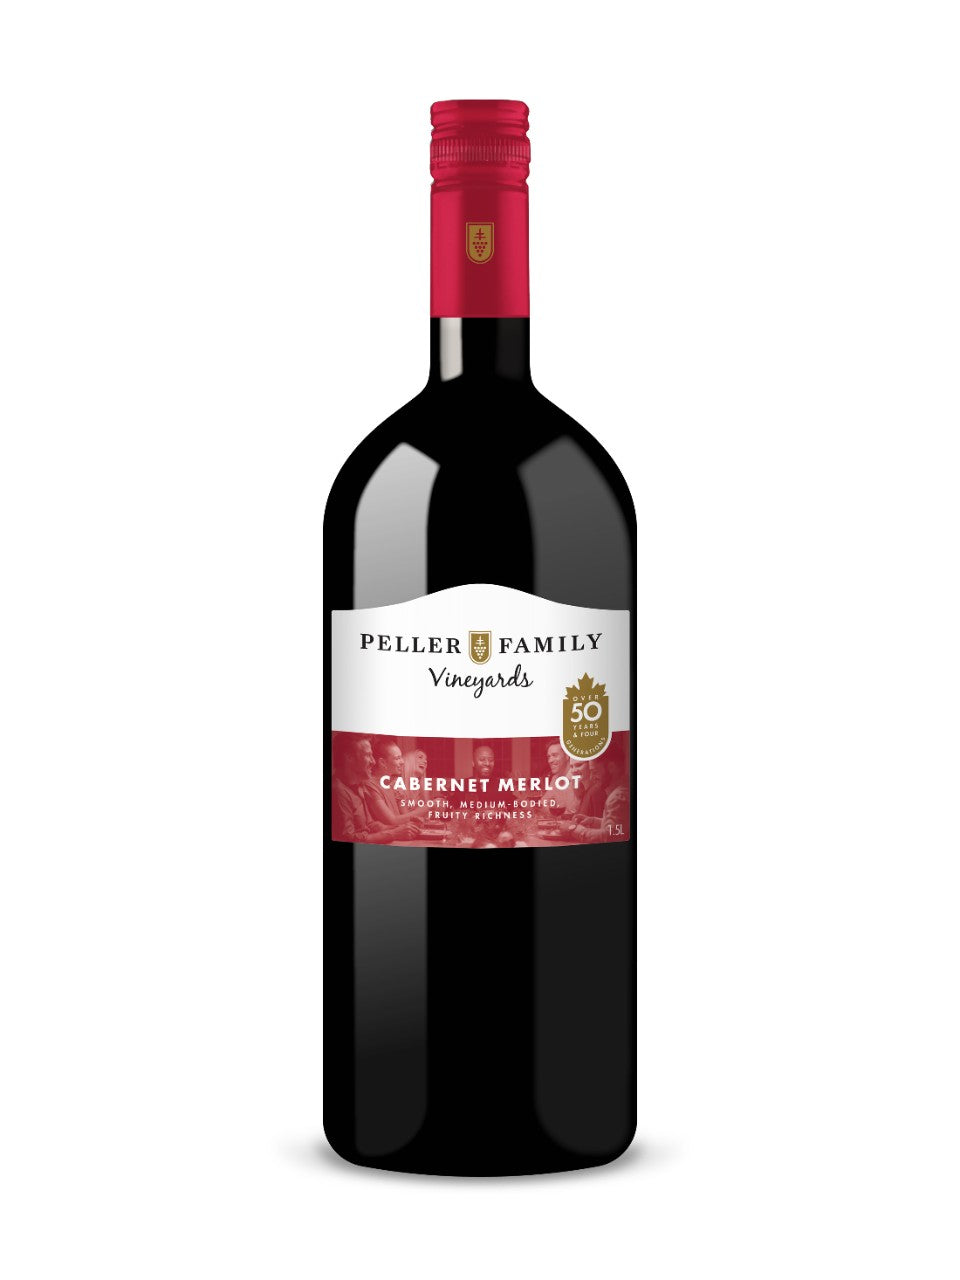 PELLER FAMILY VINEYARDS CABERNET MERLOT